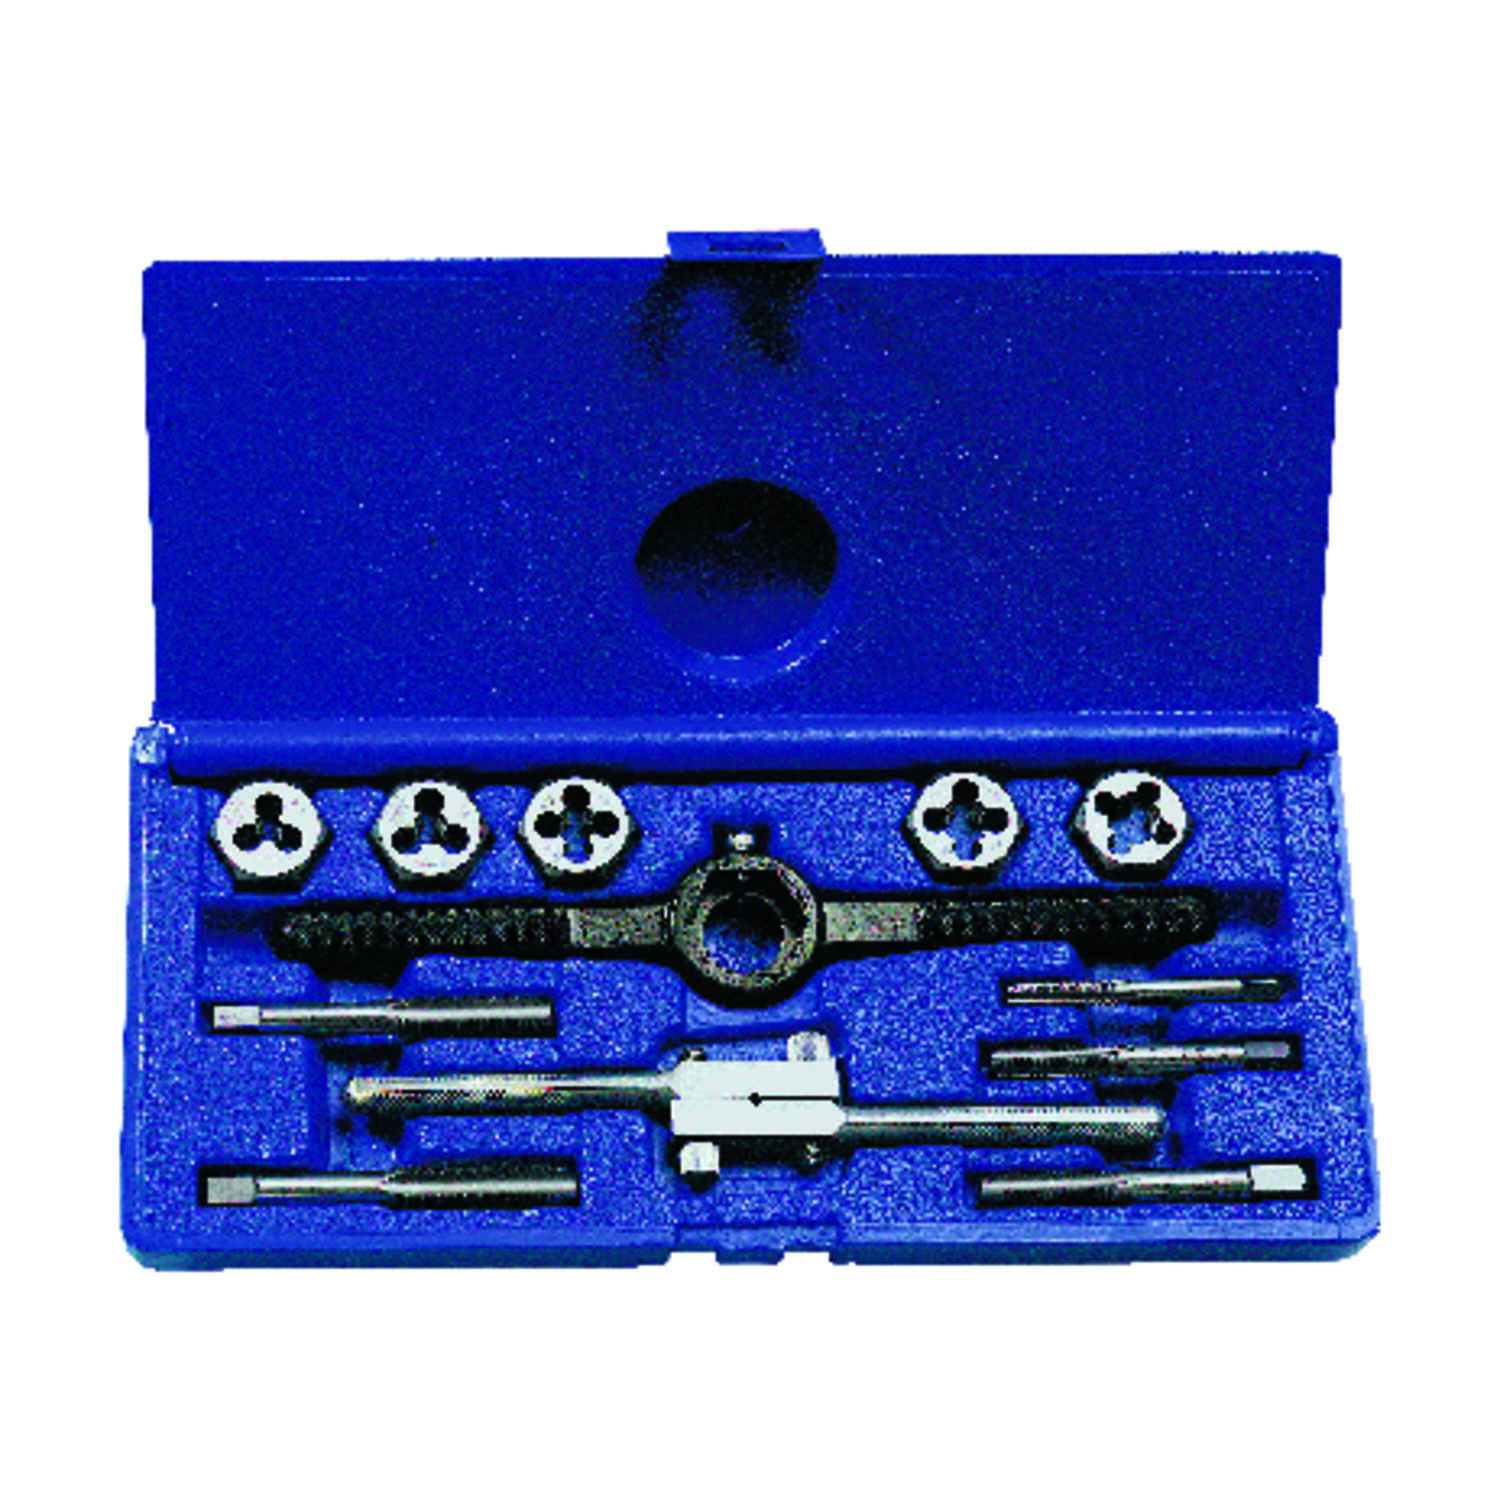 Irwin  Hanson  High Carbon Steel  SAE  Tap and Die Set  NC  1/4-20NC, 5/16-18NC, 38-16NC, 7/16-14NC,